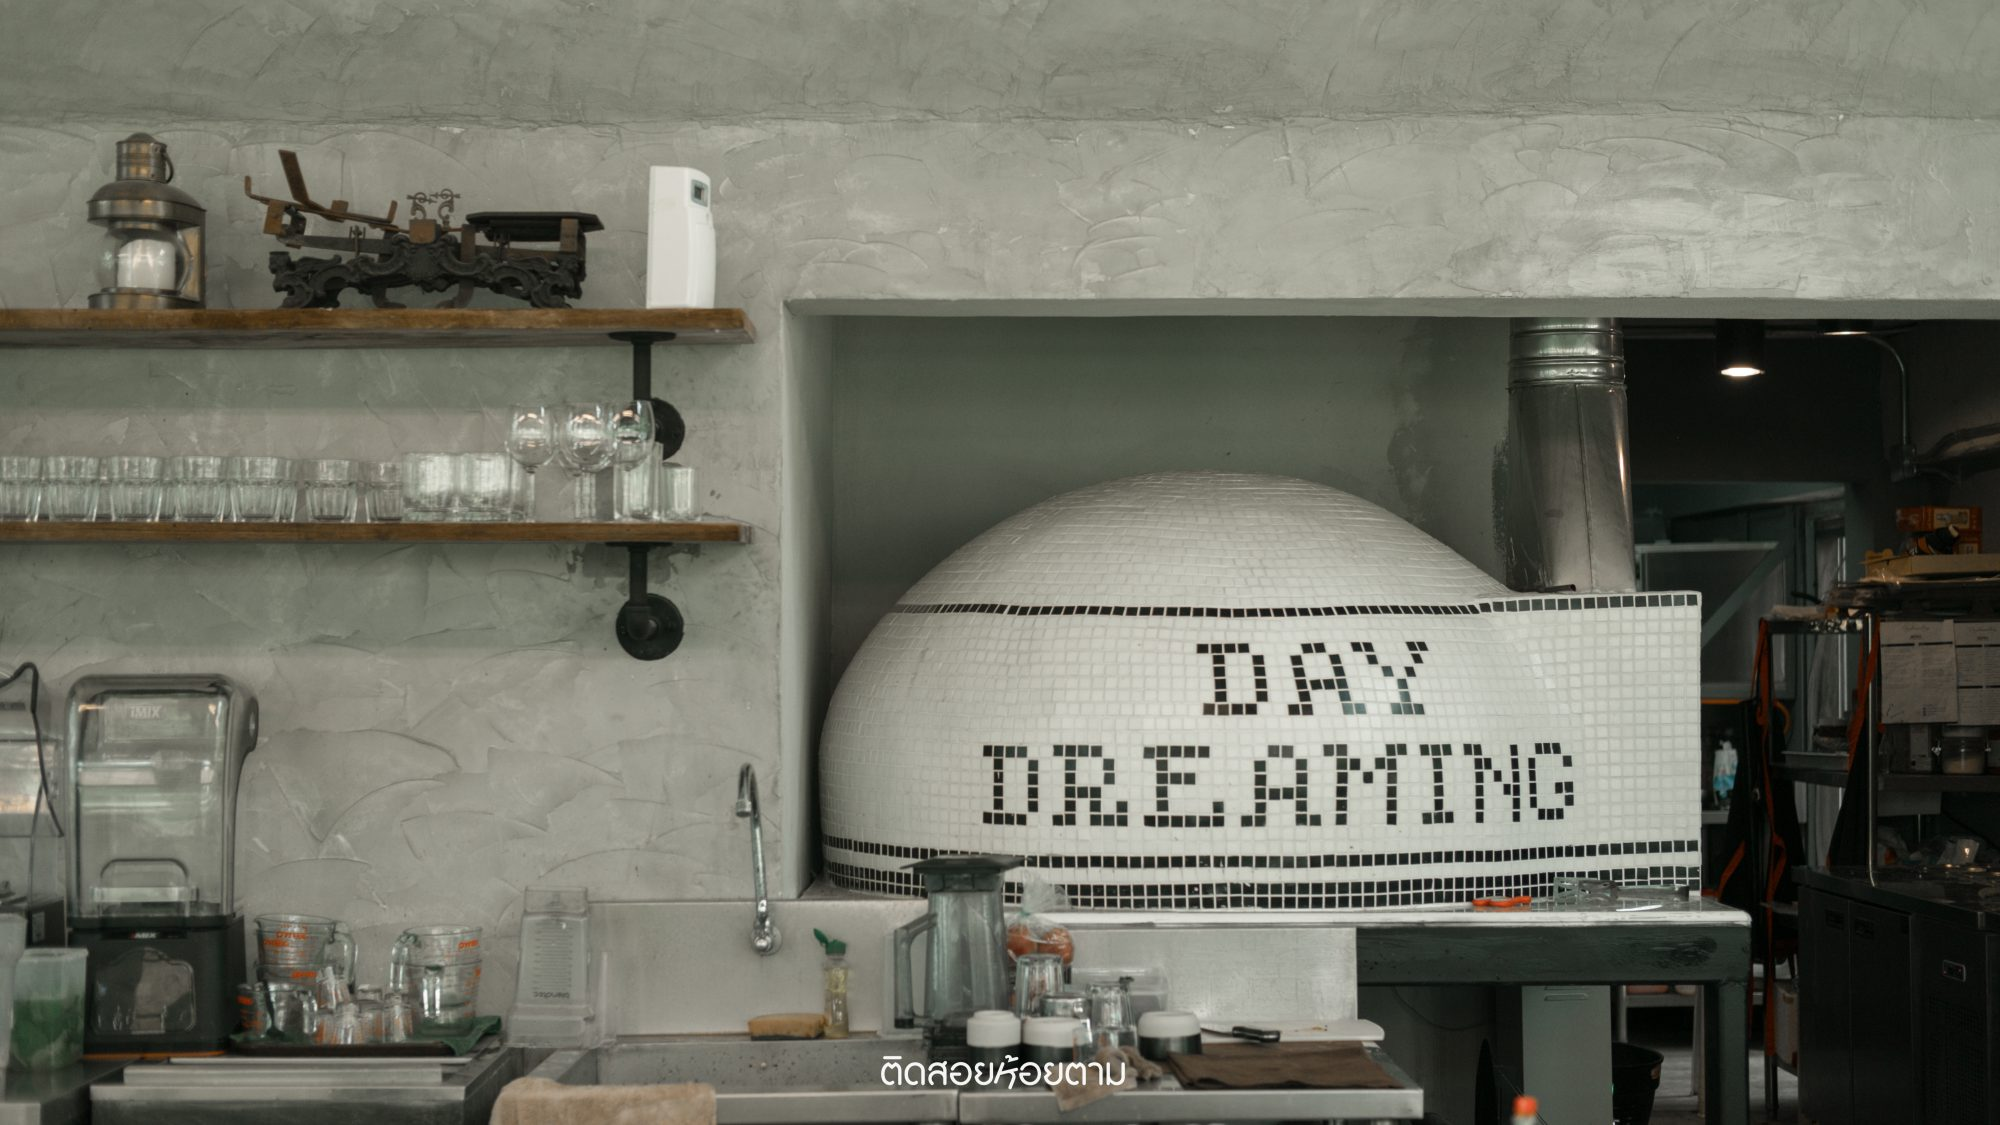 DAYDREAMING CAFE